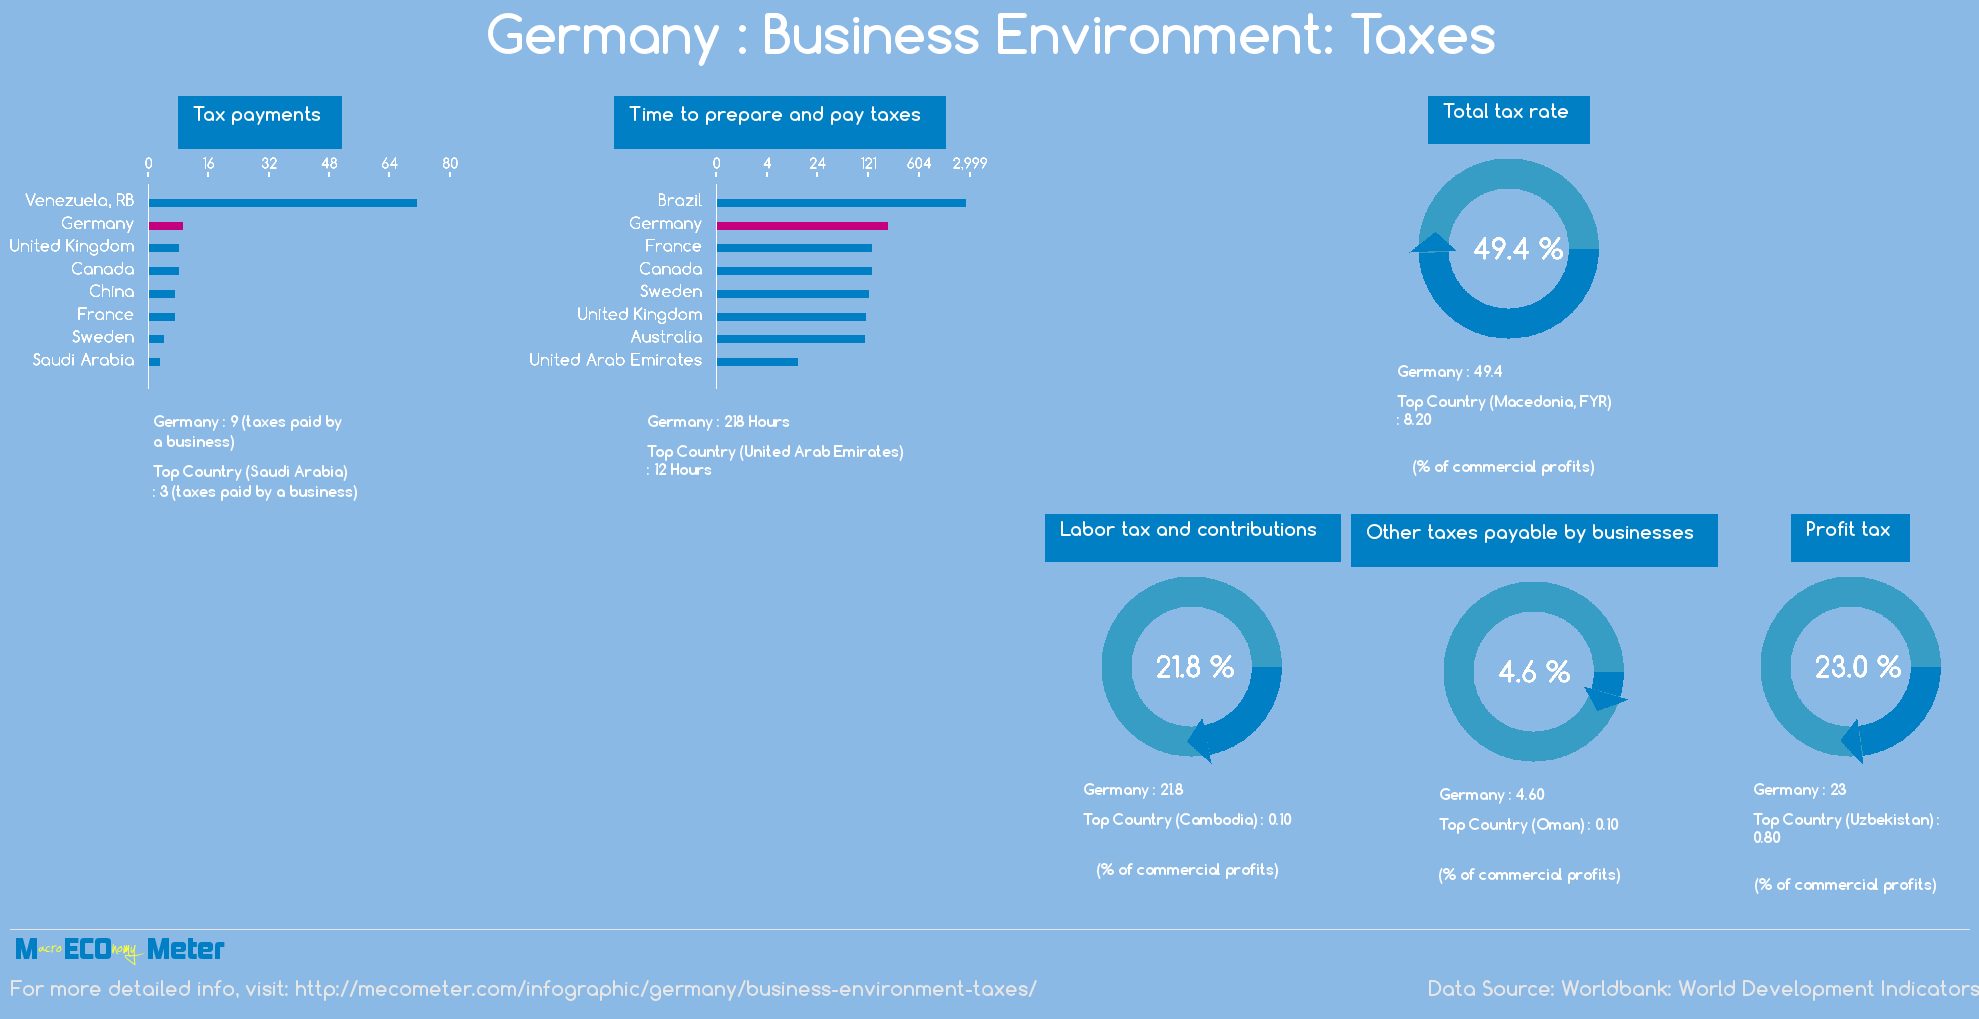 Germany : Business Environment: Taxes